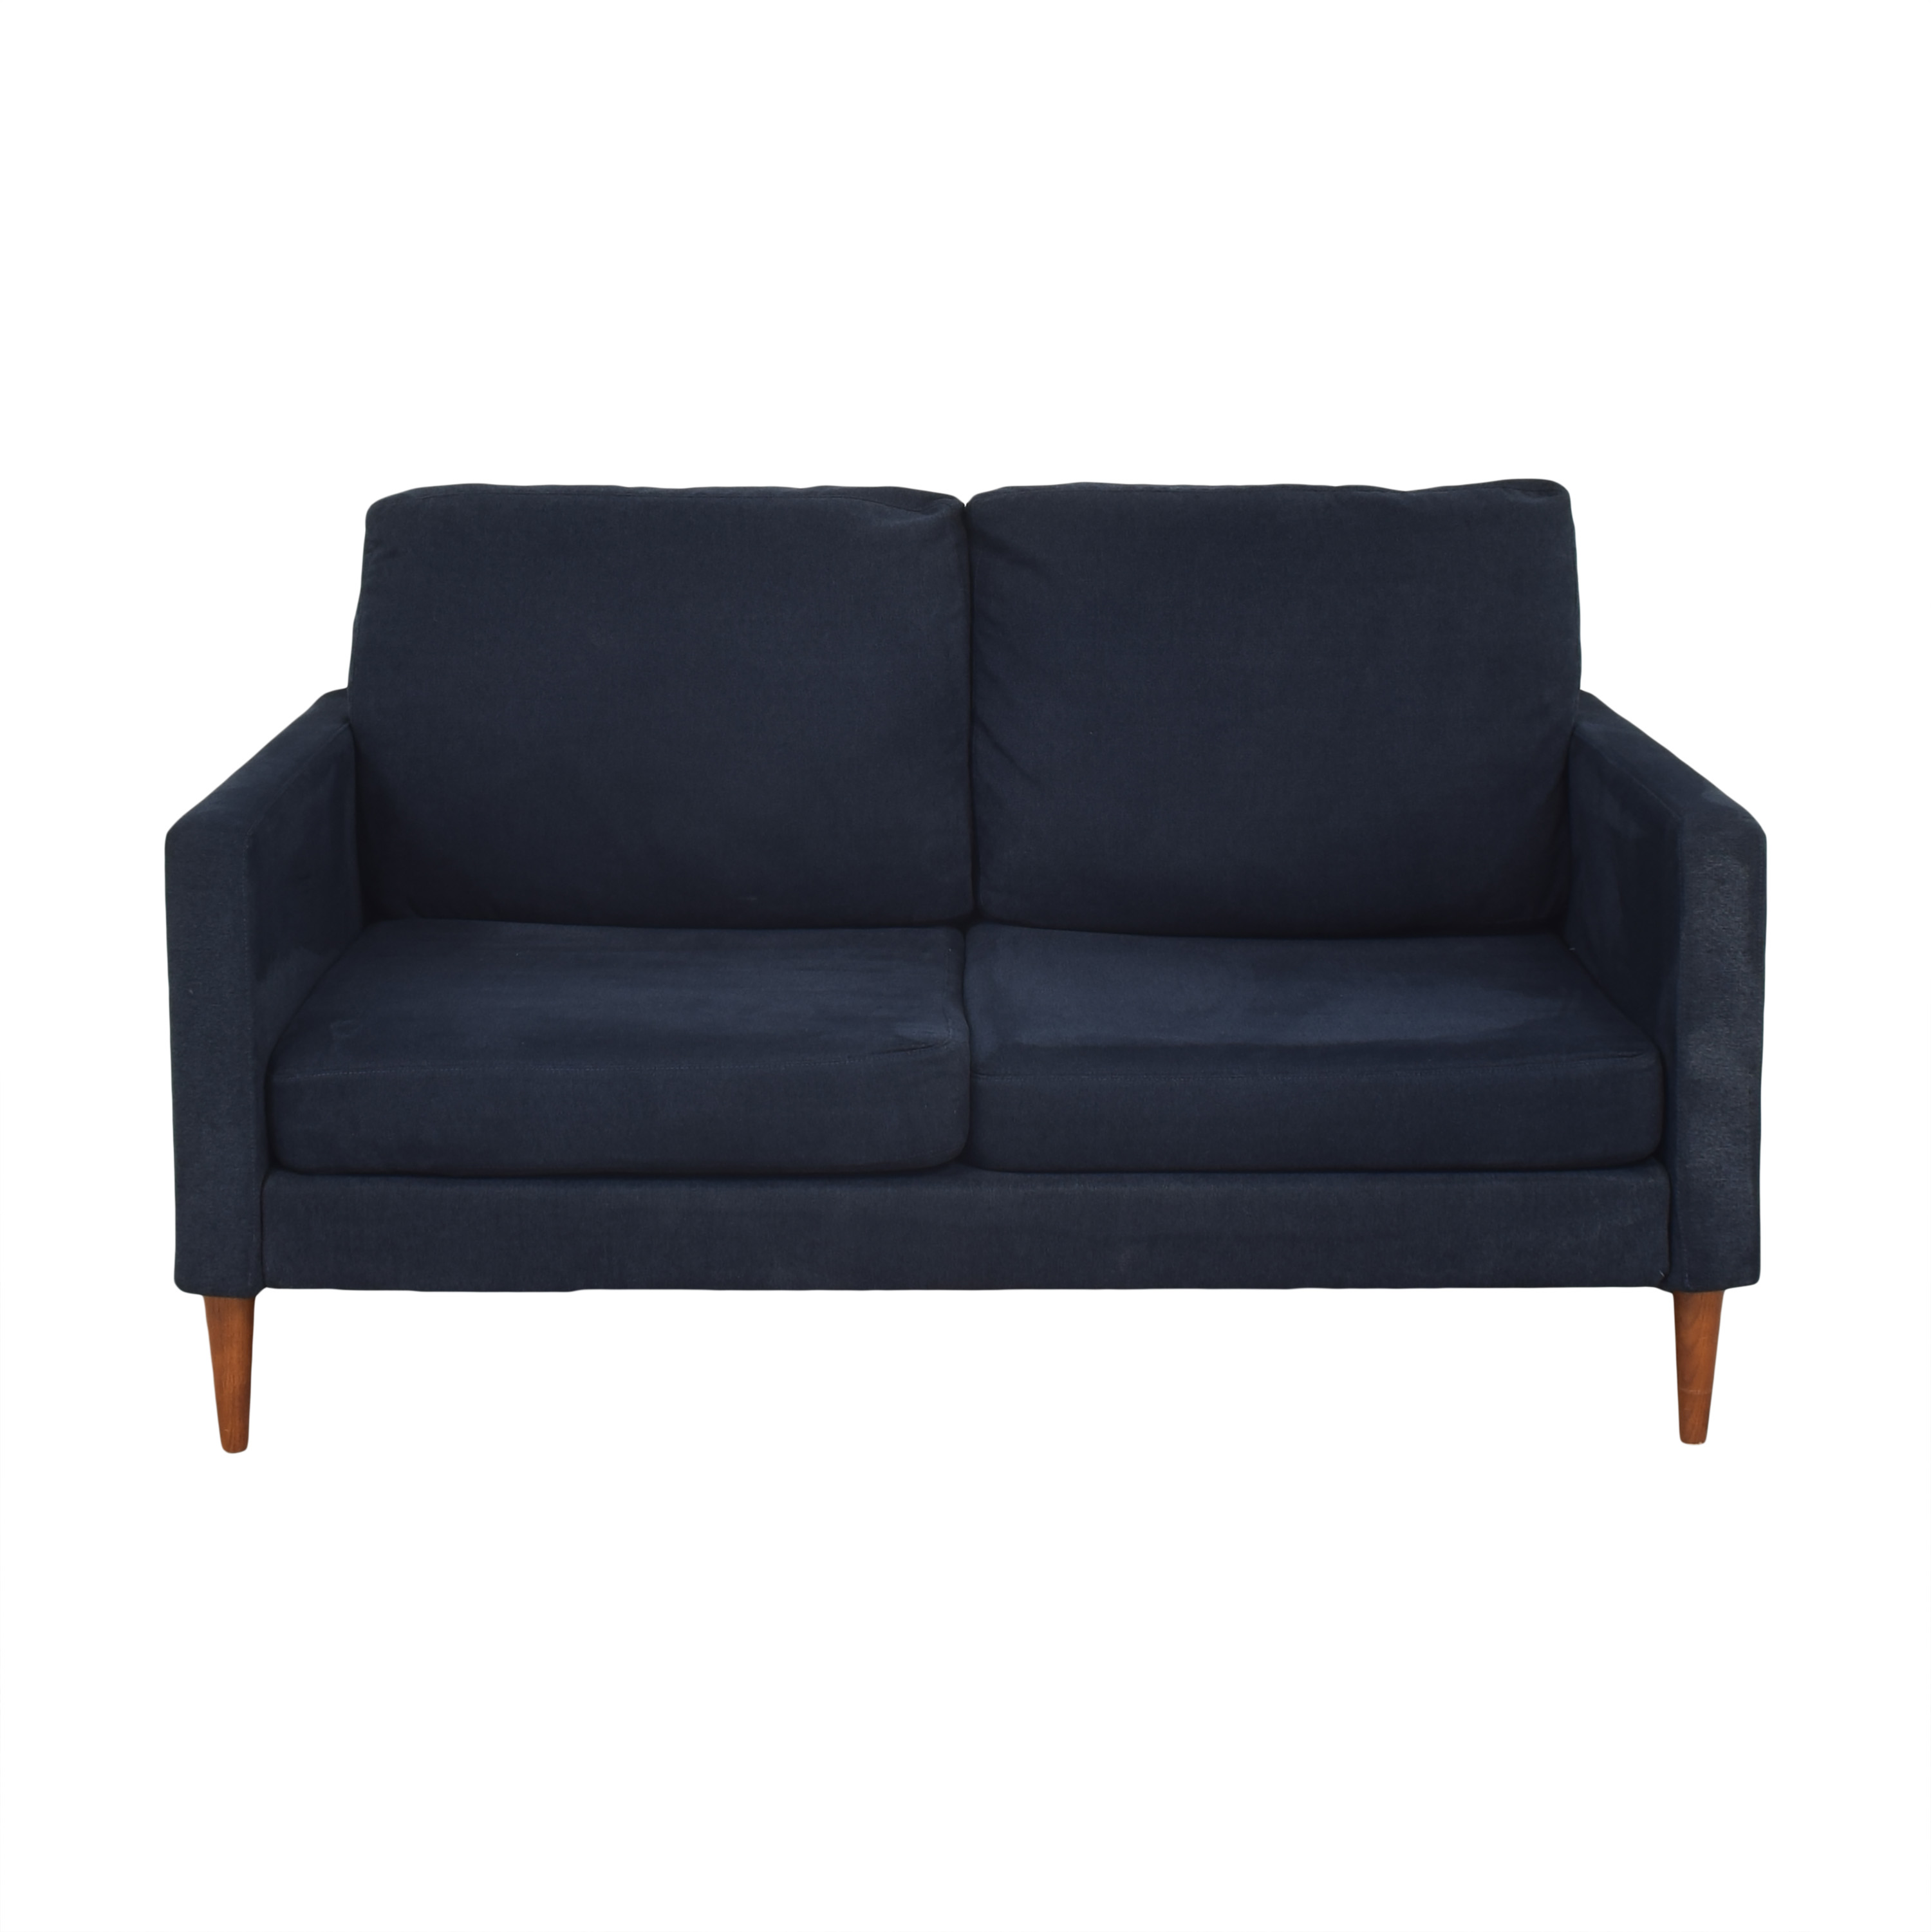 Campaign Campaign Modern Loveseat in Brushed Weave Midnight Navy for sale